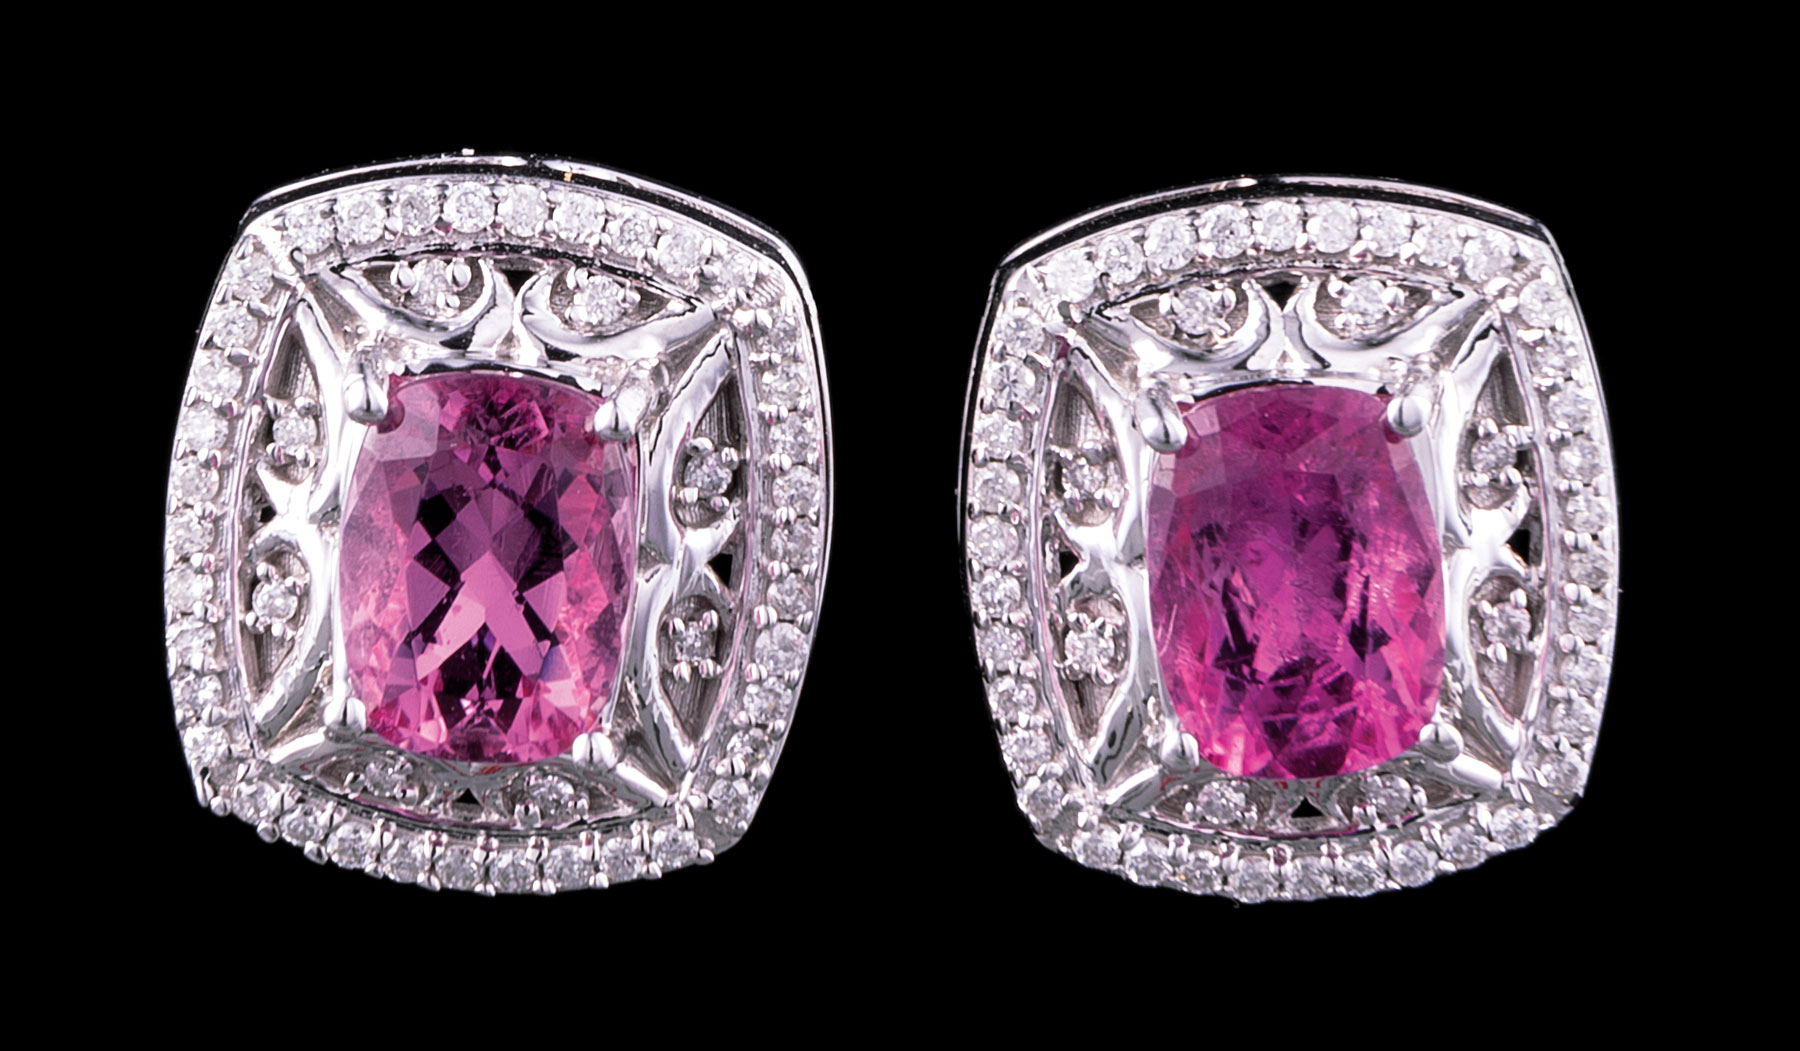 Lot 610 - Pair of 14 kt. White Gold, Pink Tourmaline and Diamond Earrings , central rectangular faceted